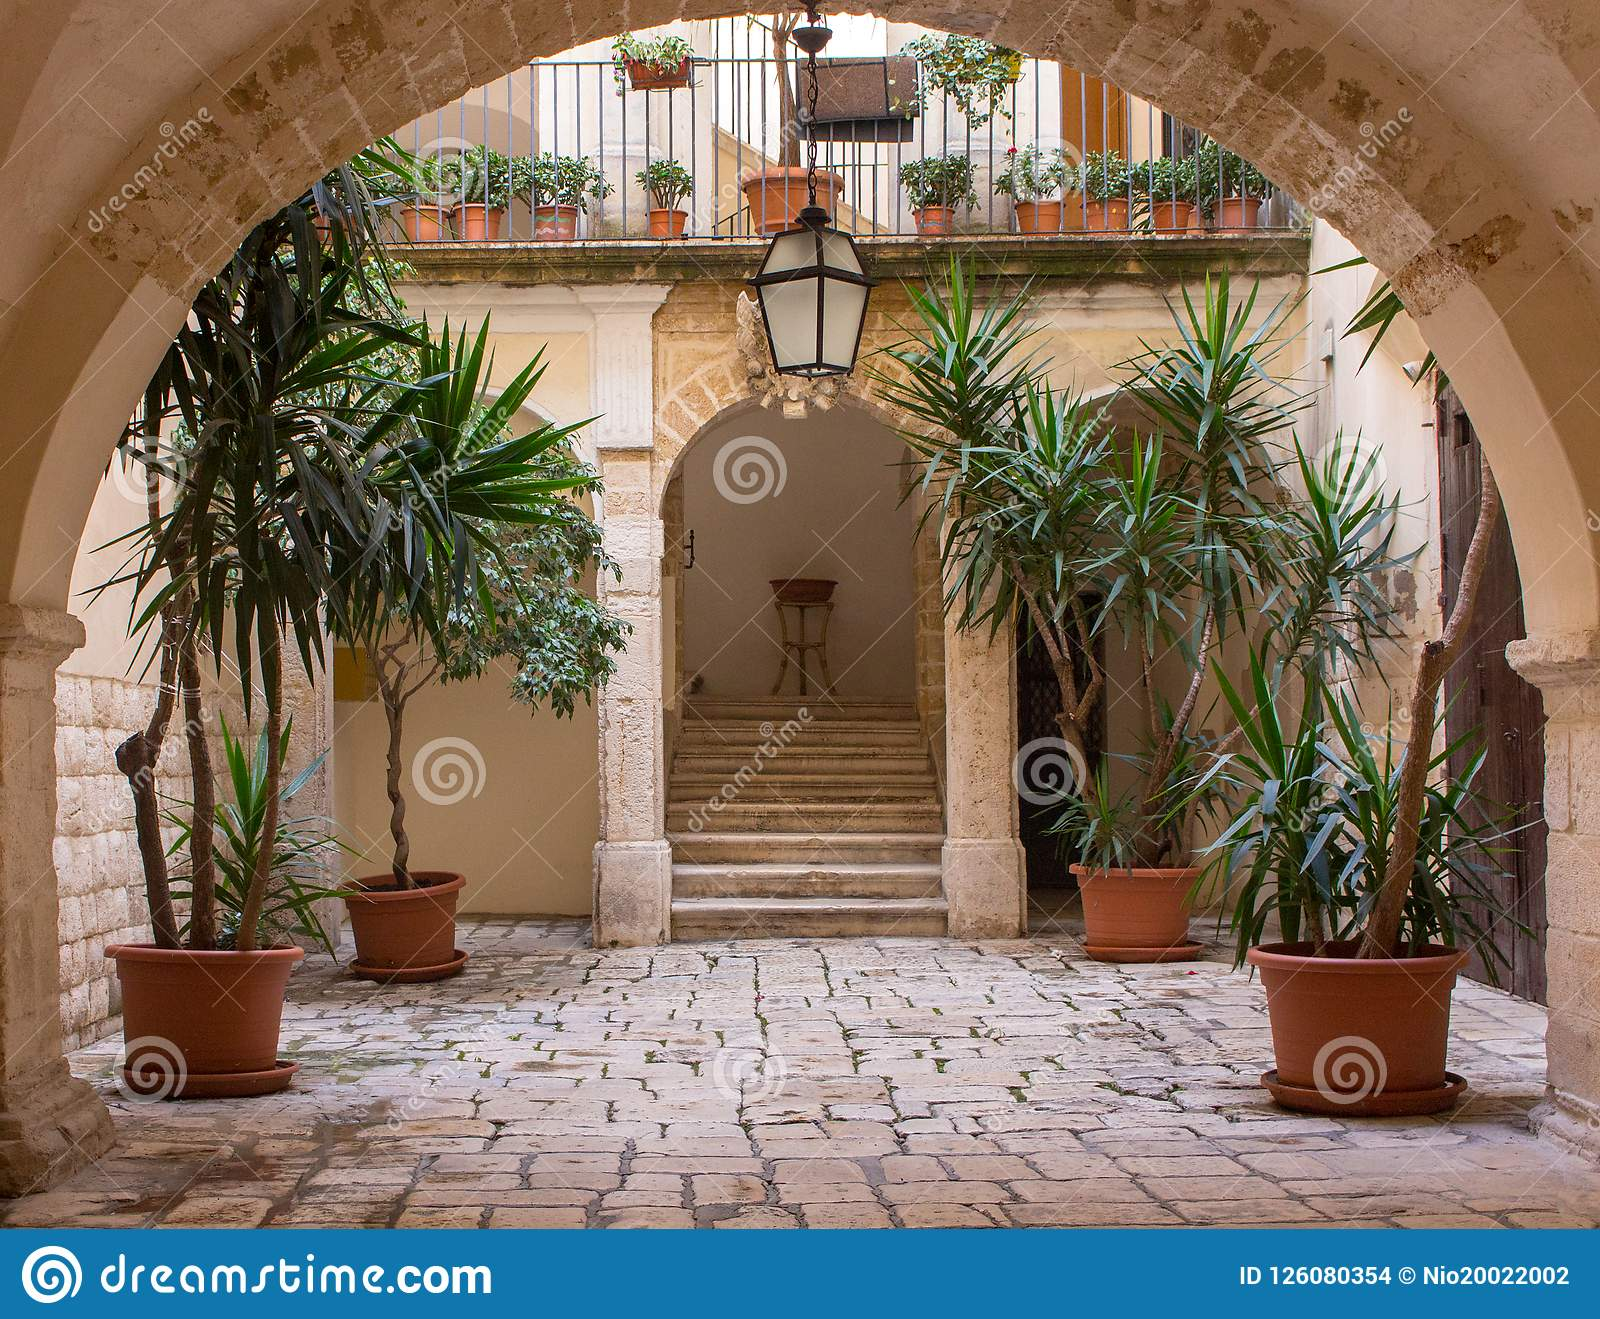 Backyard with arch plants in pots stairs and lantern. Patio decoration. Ancient courtyard background. Medieval architecture. & Backyard With Arch Plants In Pots Stairs And Lantern. Patio ...